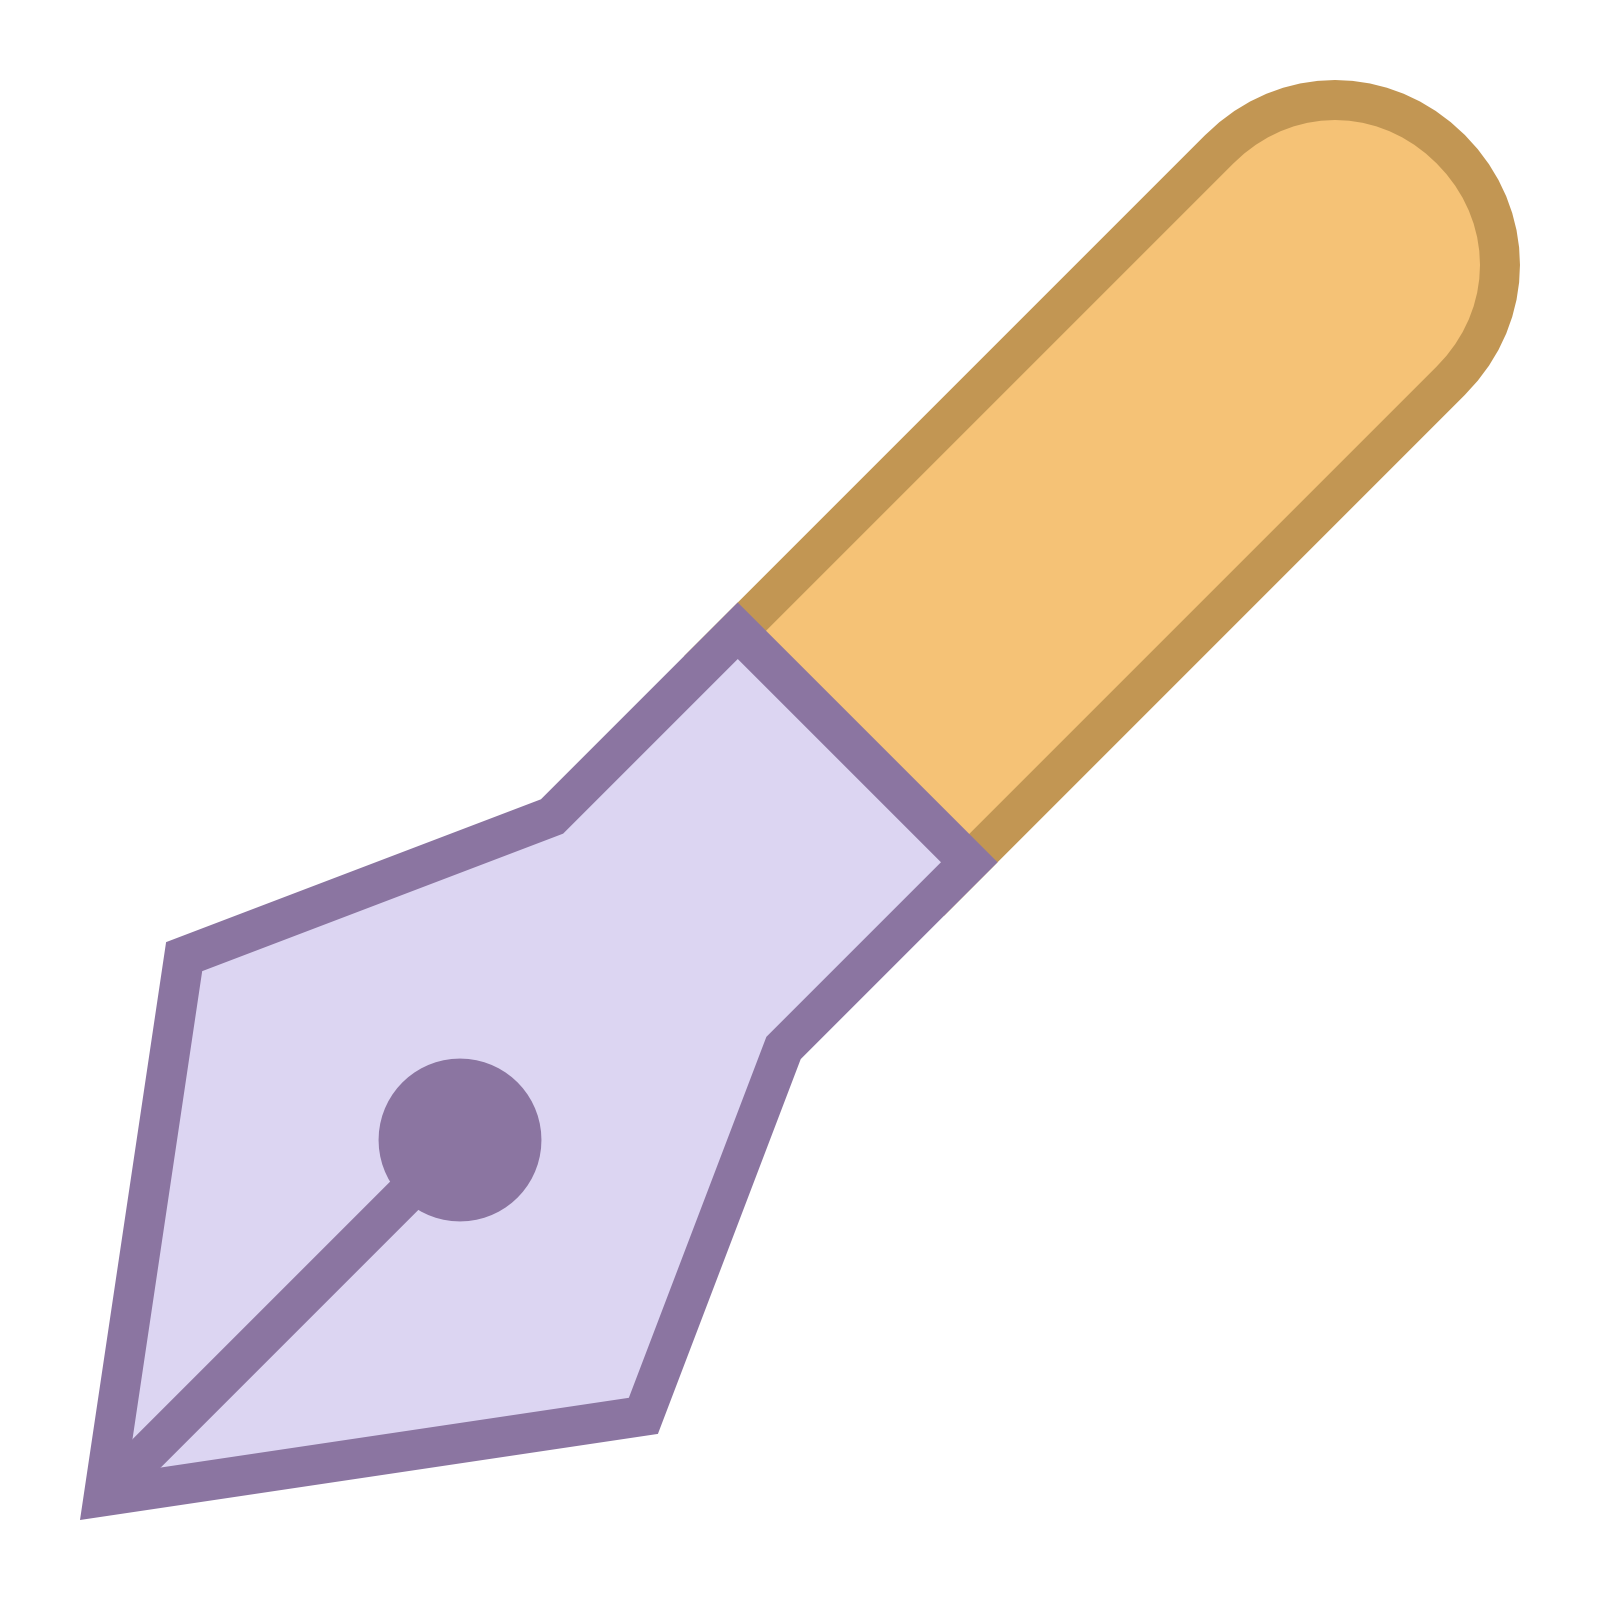 Vector pens old fashioned. Pen icon free download